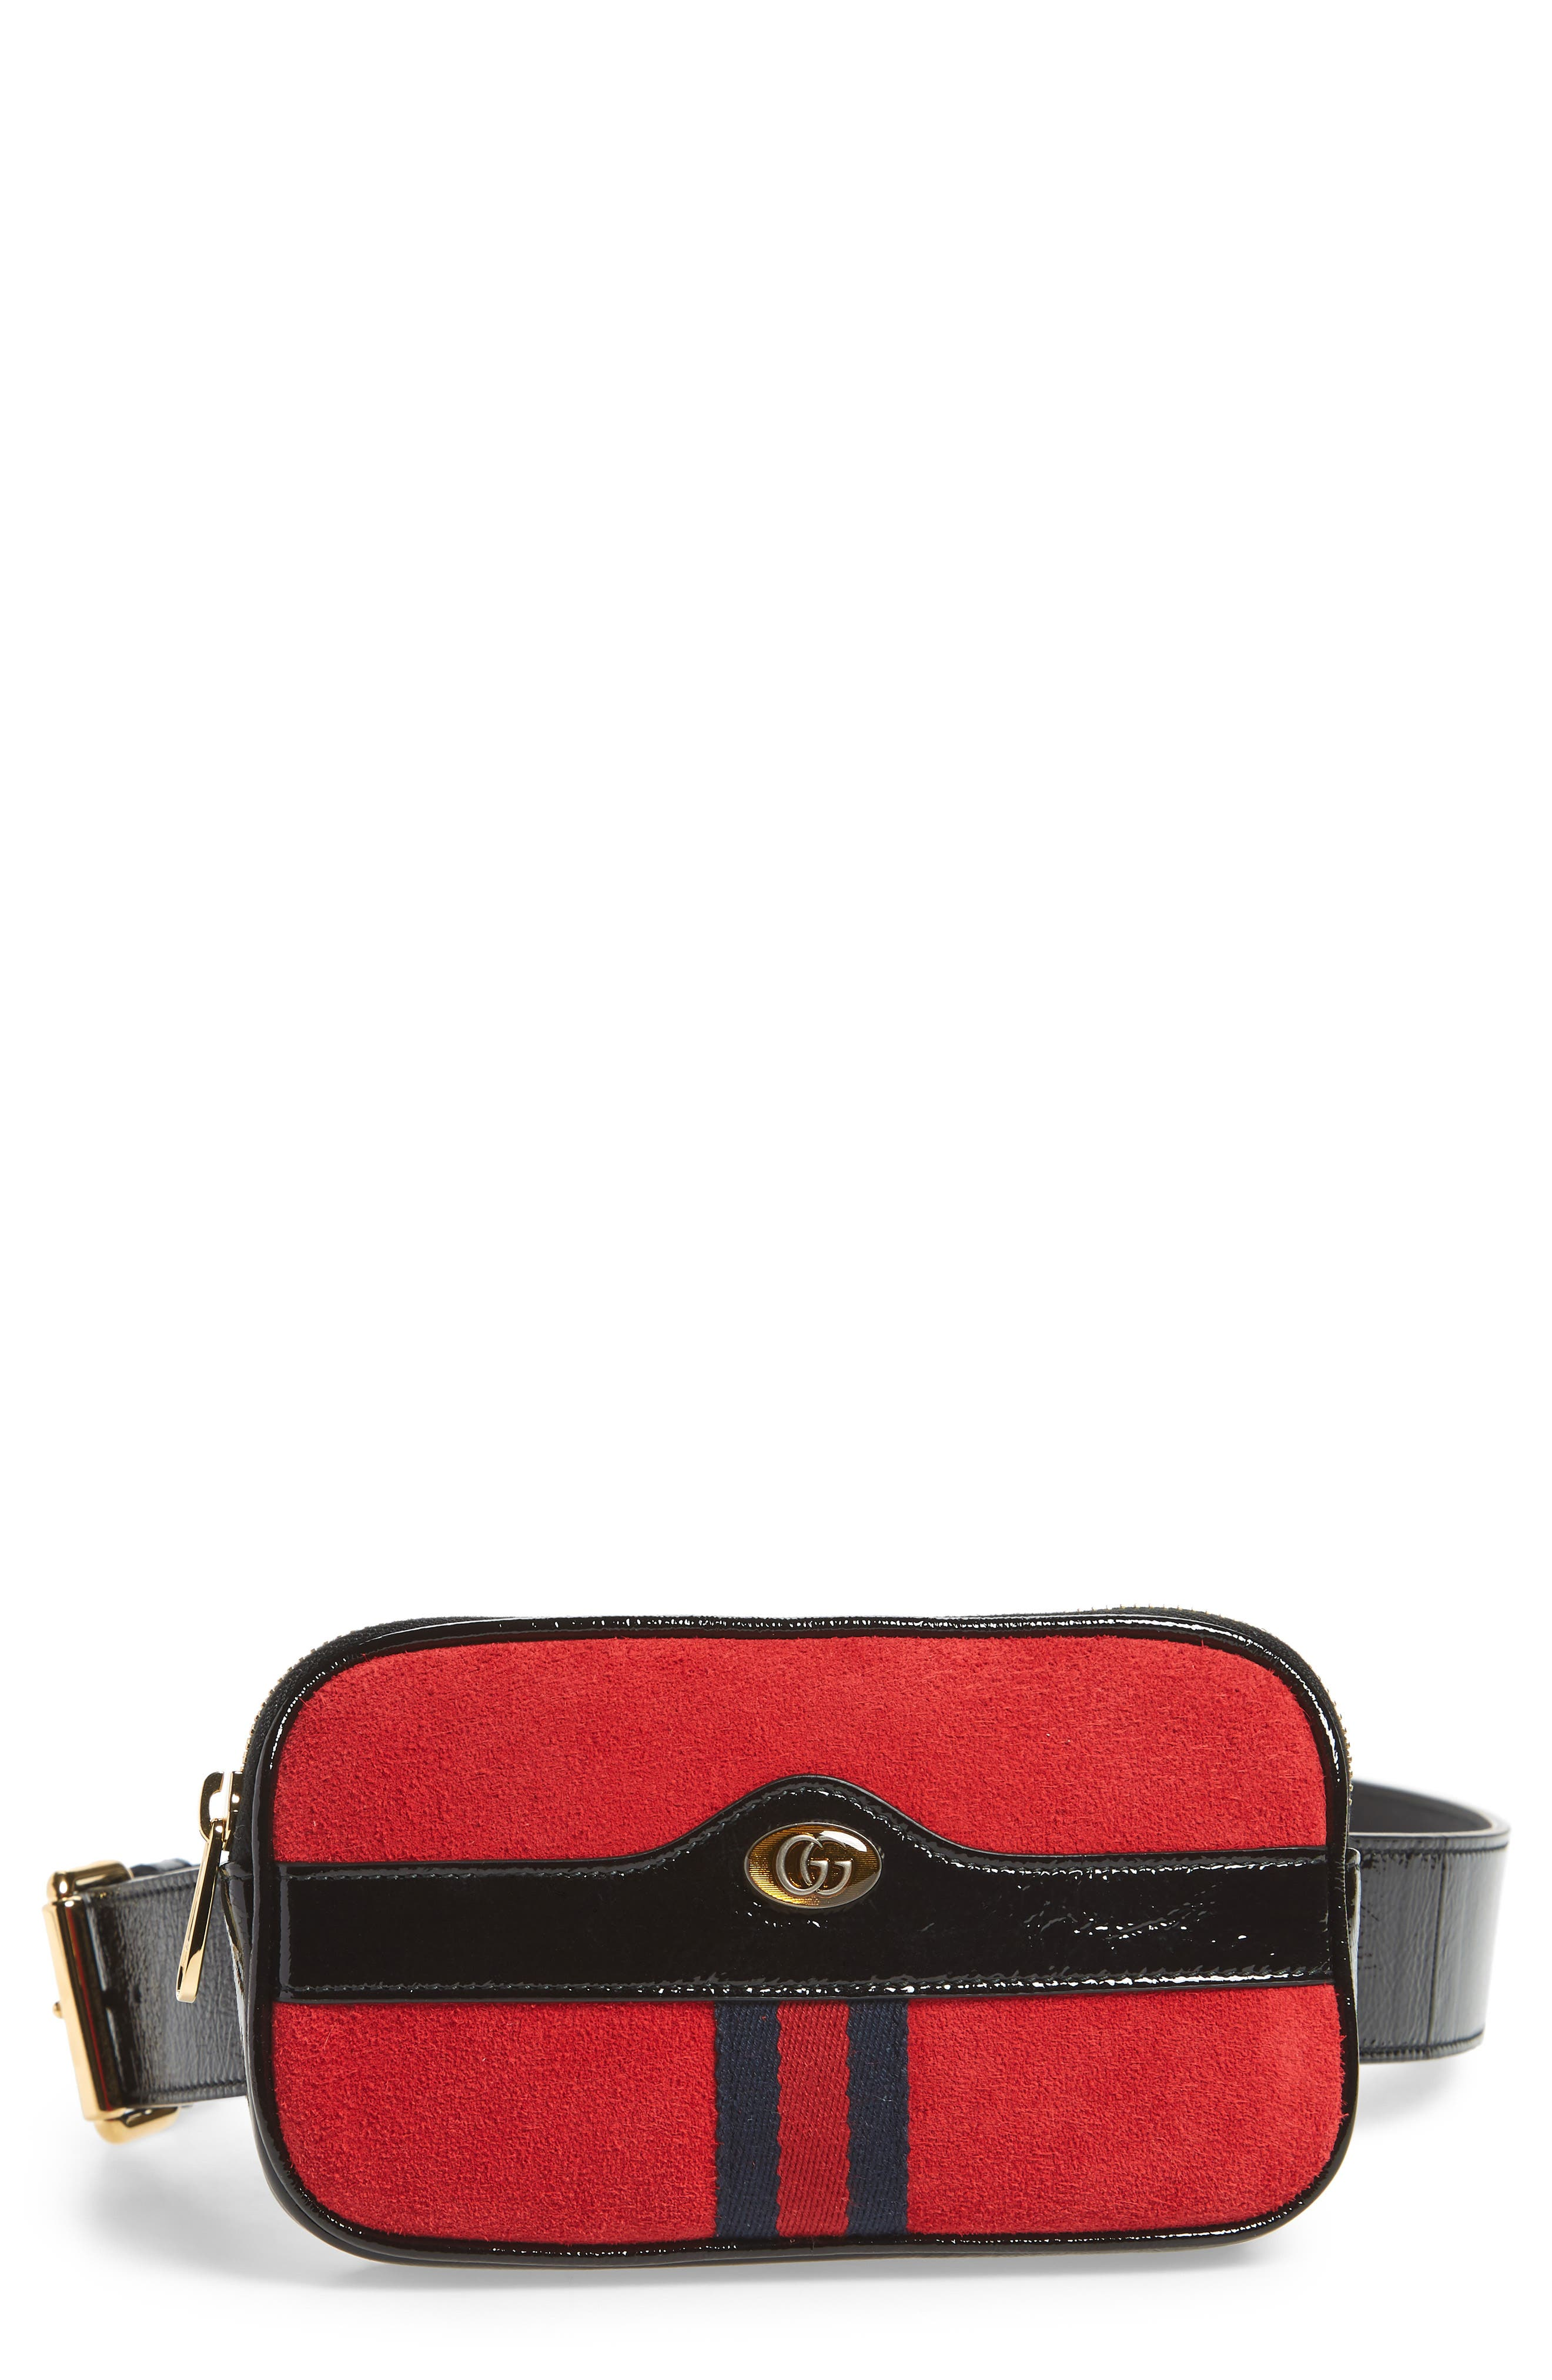 Gucci Ophidia Suede Belt Bag